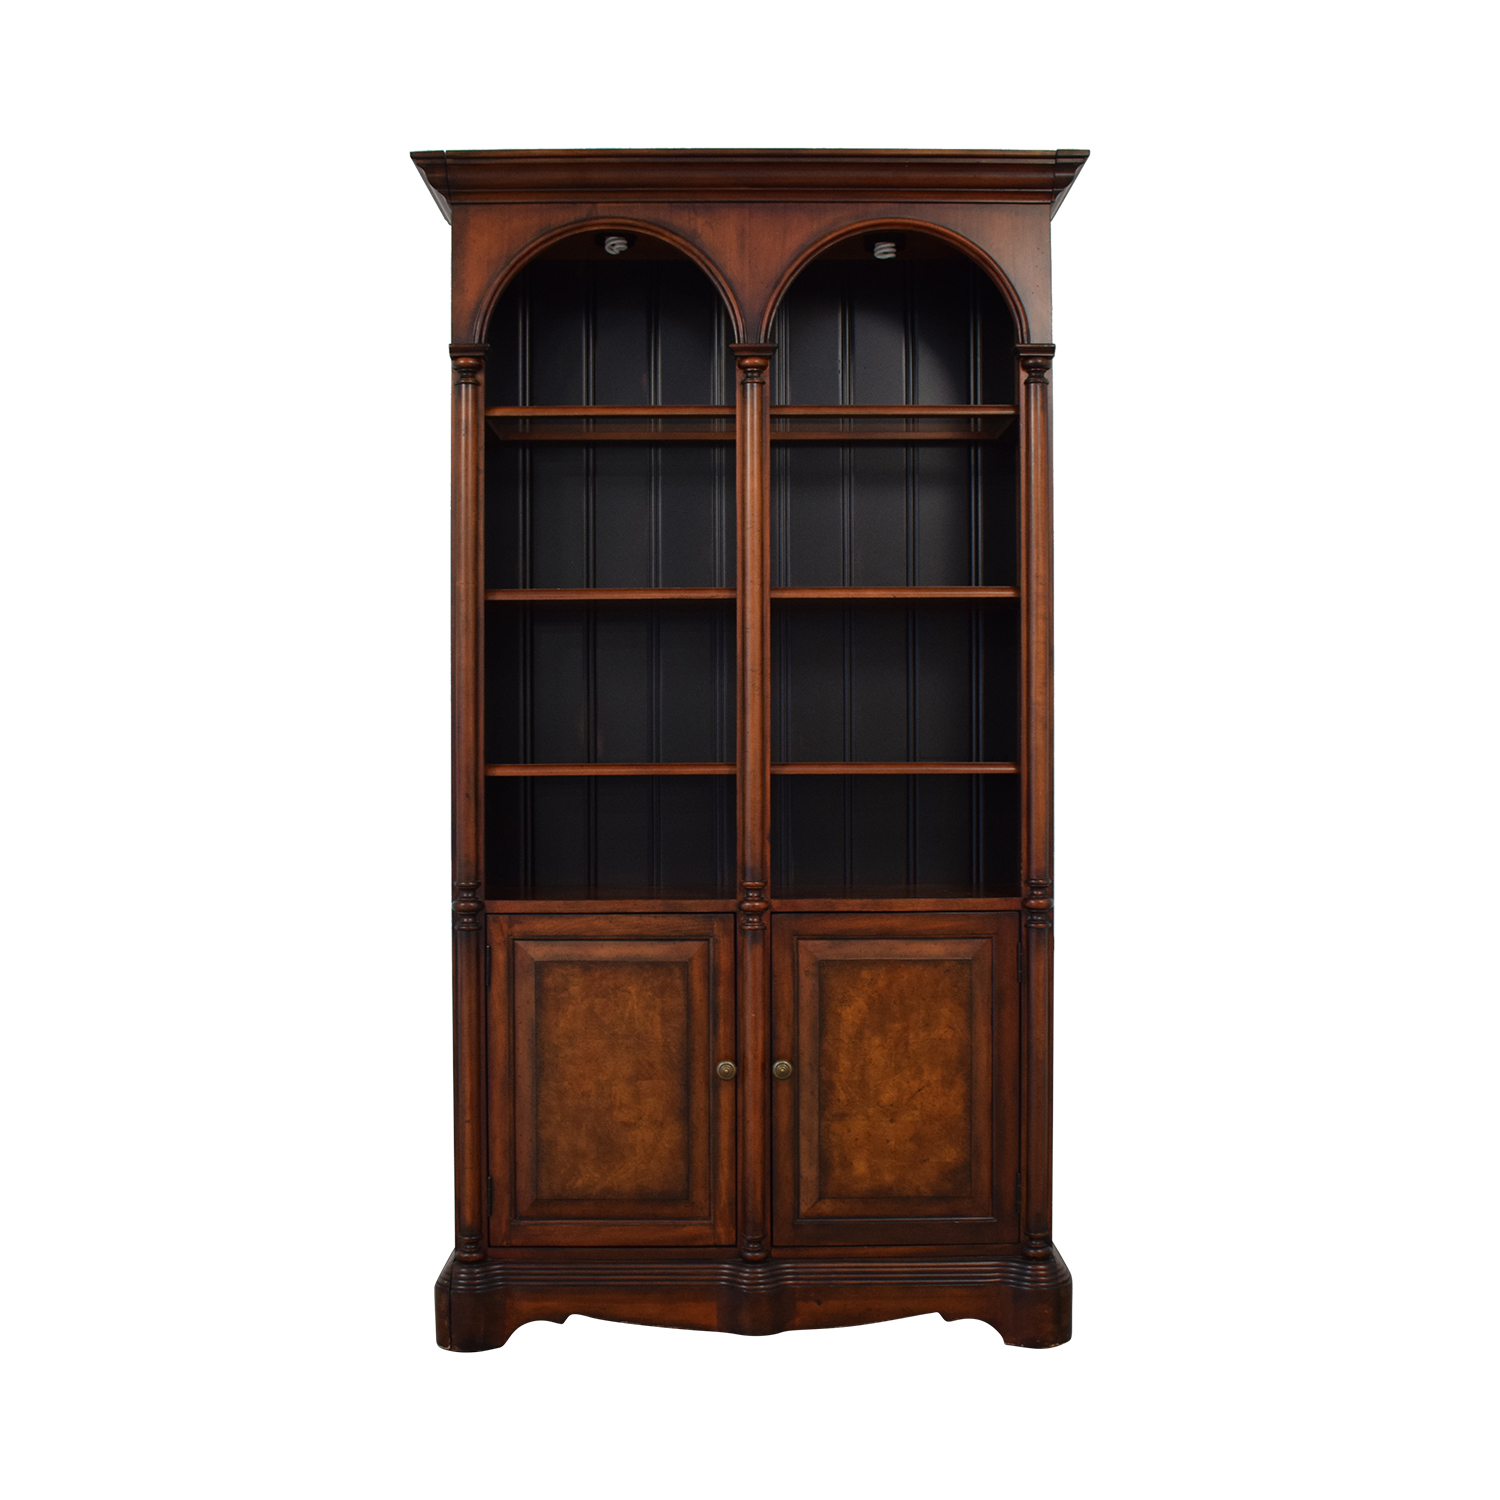 shop Hooker Furniture Hooker Furniture Bunching Bookcase online